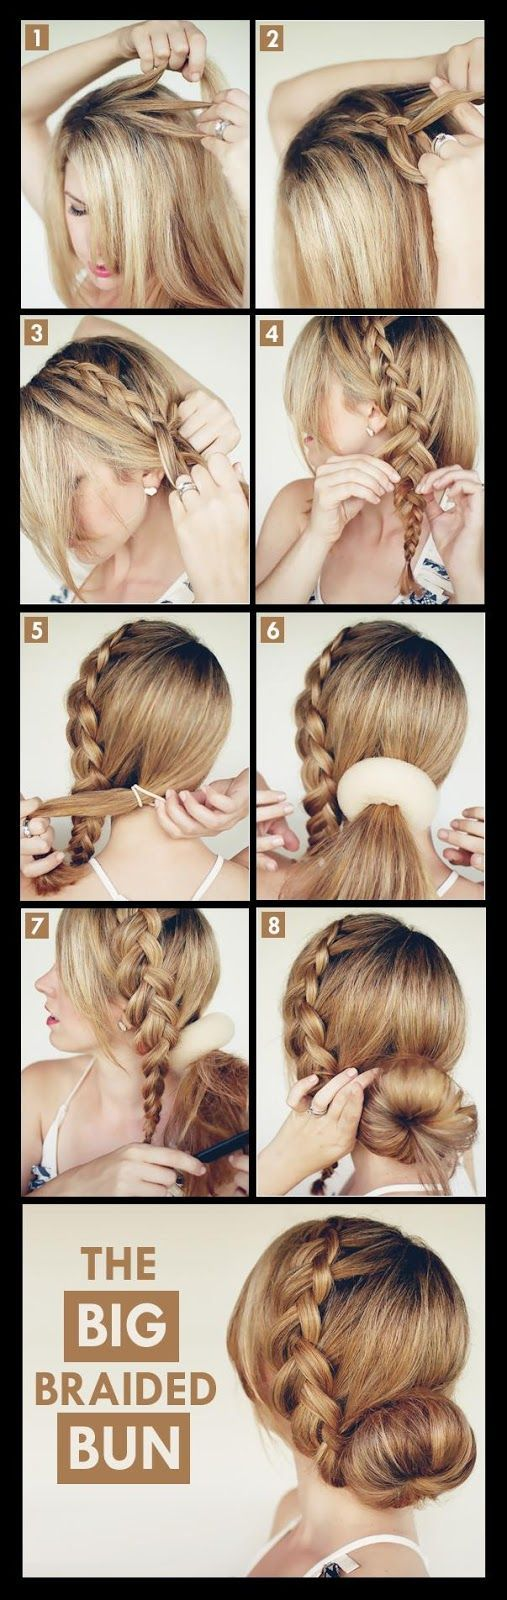 Bridal braids a collection of style inspiration and pinteresting